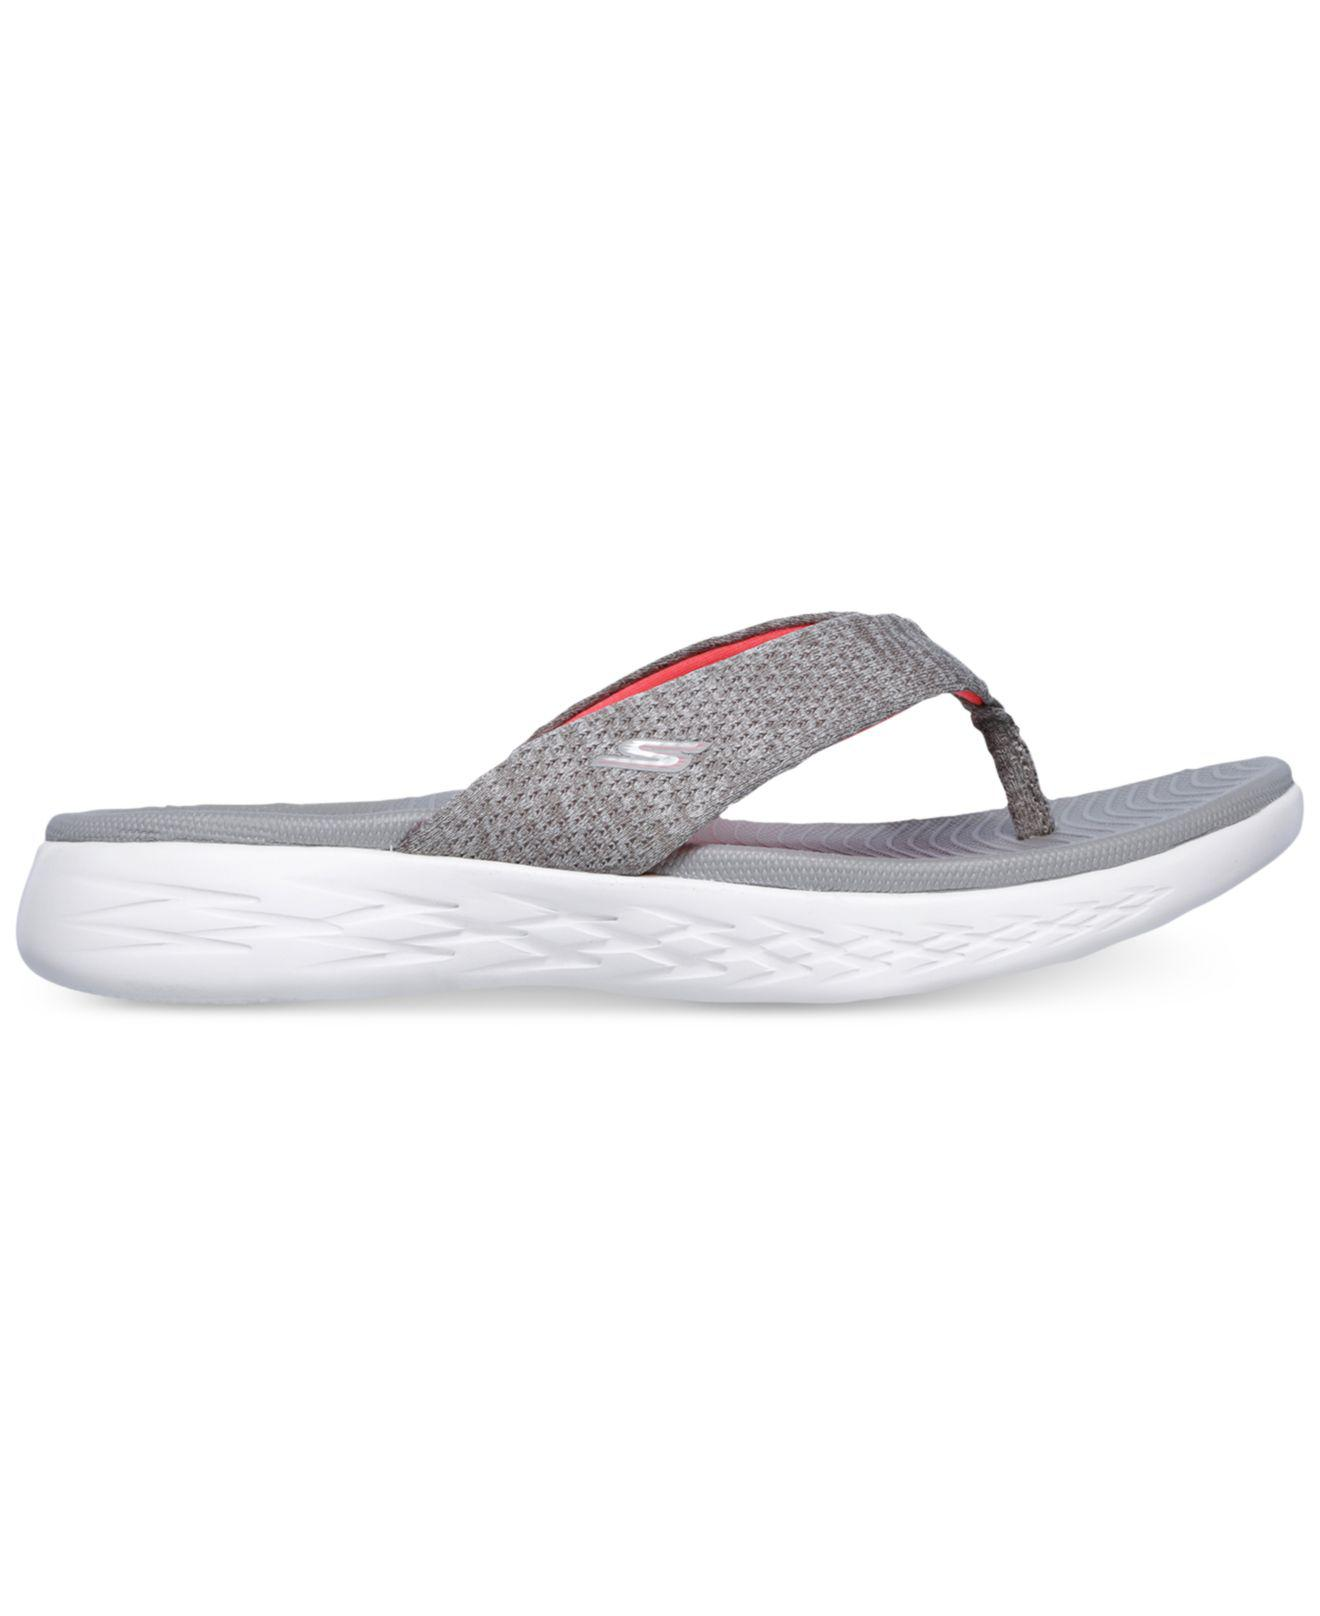 dd7e3b74df9 Lyst - Skechers On The Go 600 - Preferred Athletic Thong Flip Flop Sandals  From Finish Line in Gray - Save 57%